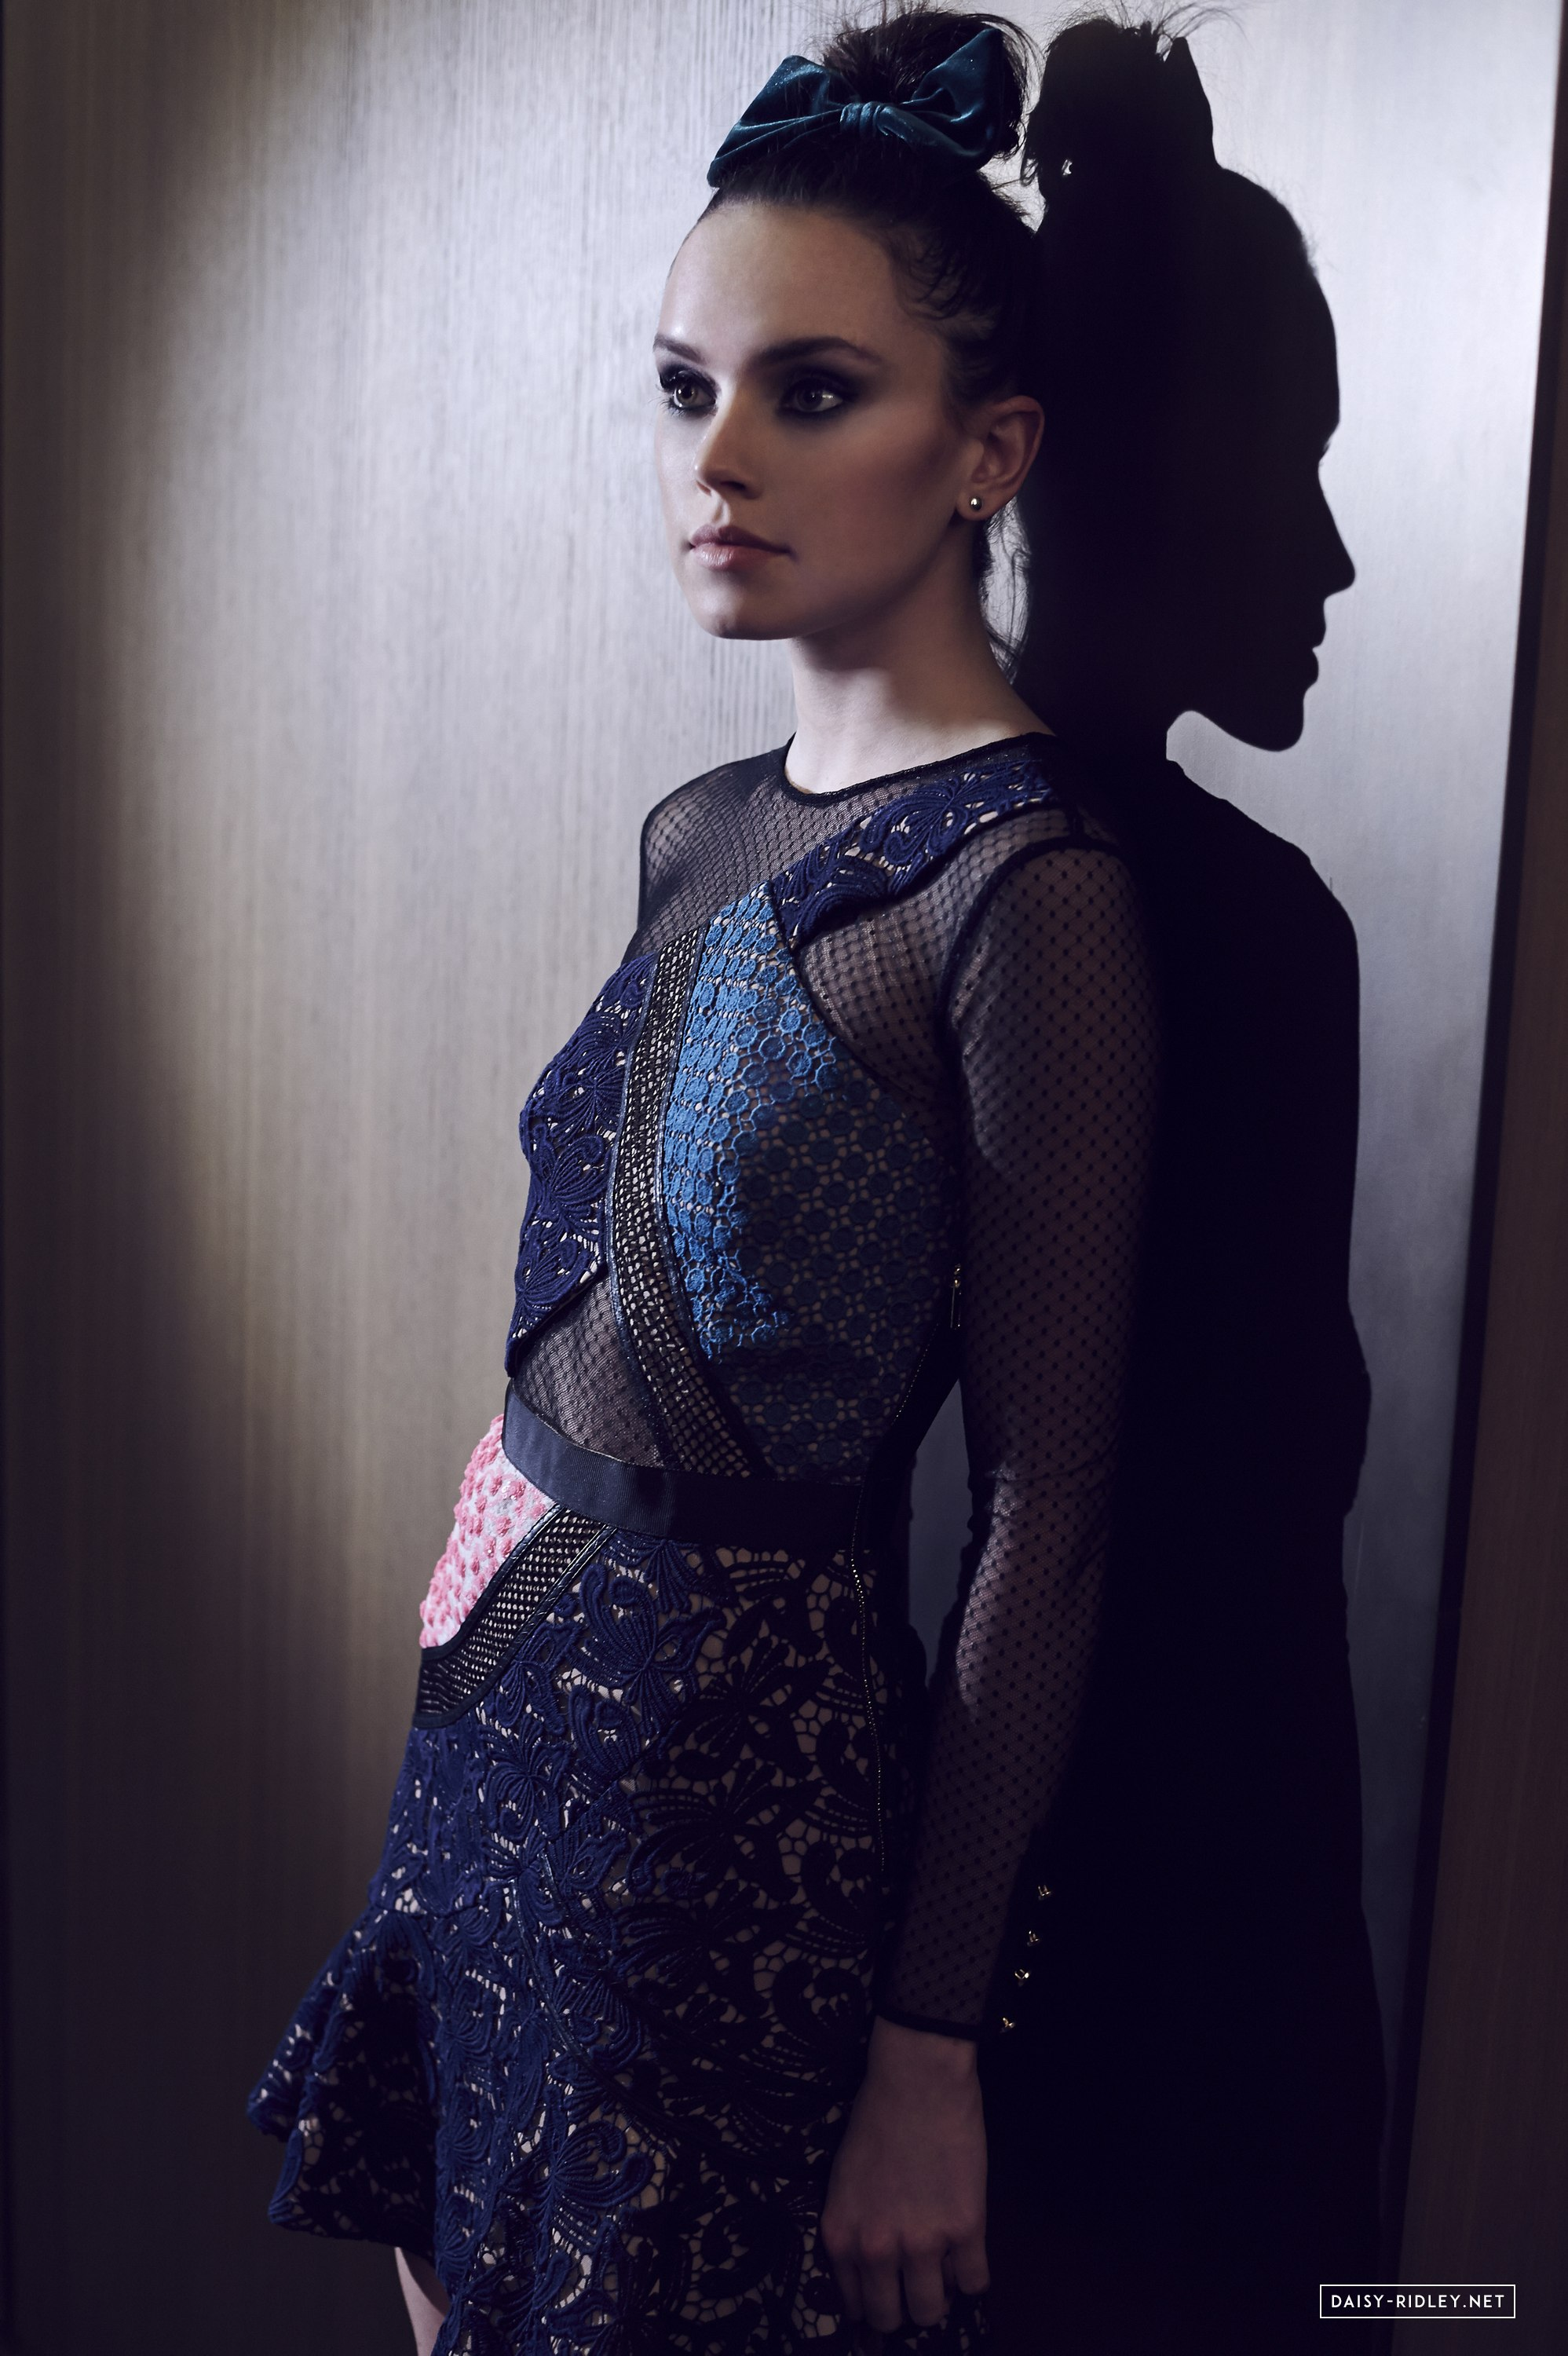 hermosas top d ridley photosession 001 018